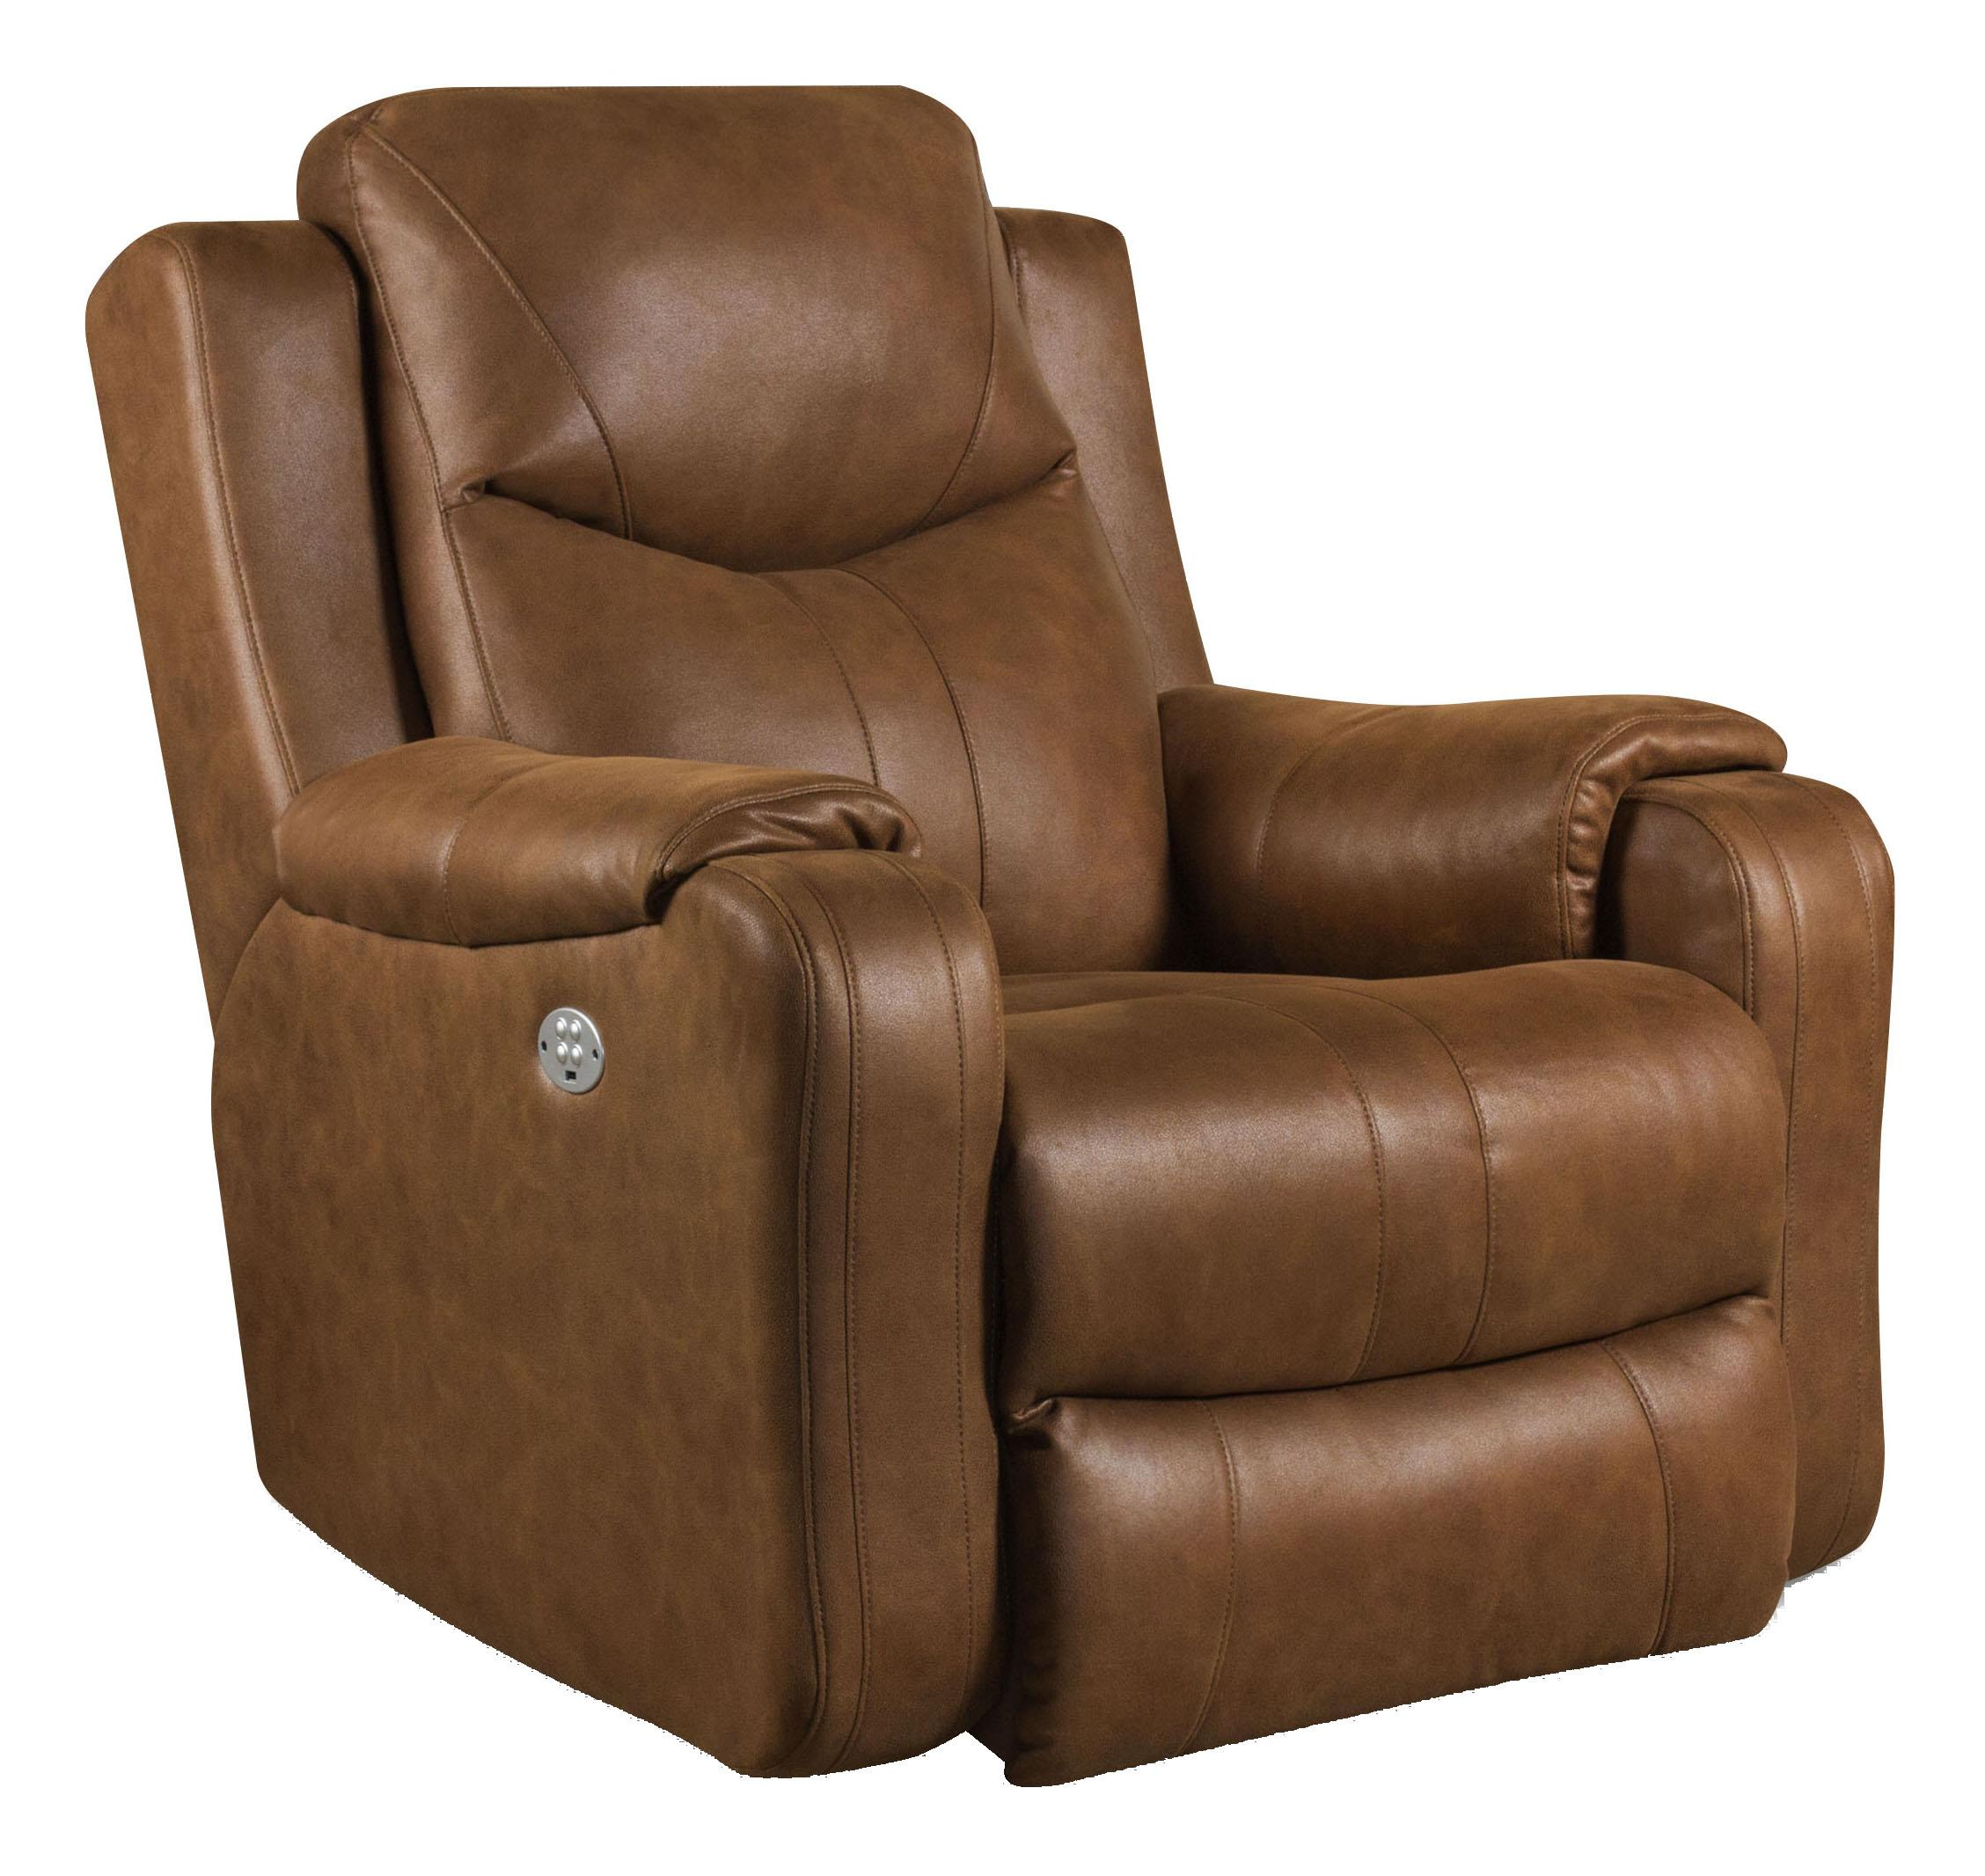 Rocking recliner chairs - Southern Motion Marvel Rocker Recliner With Power Headrest Item Number 5881p 186